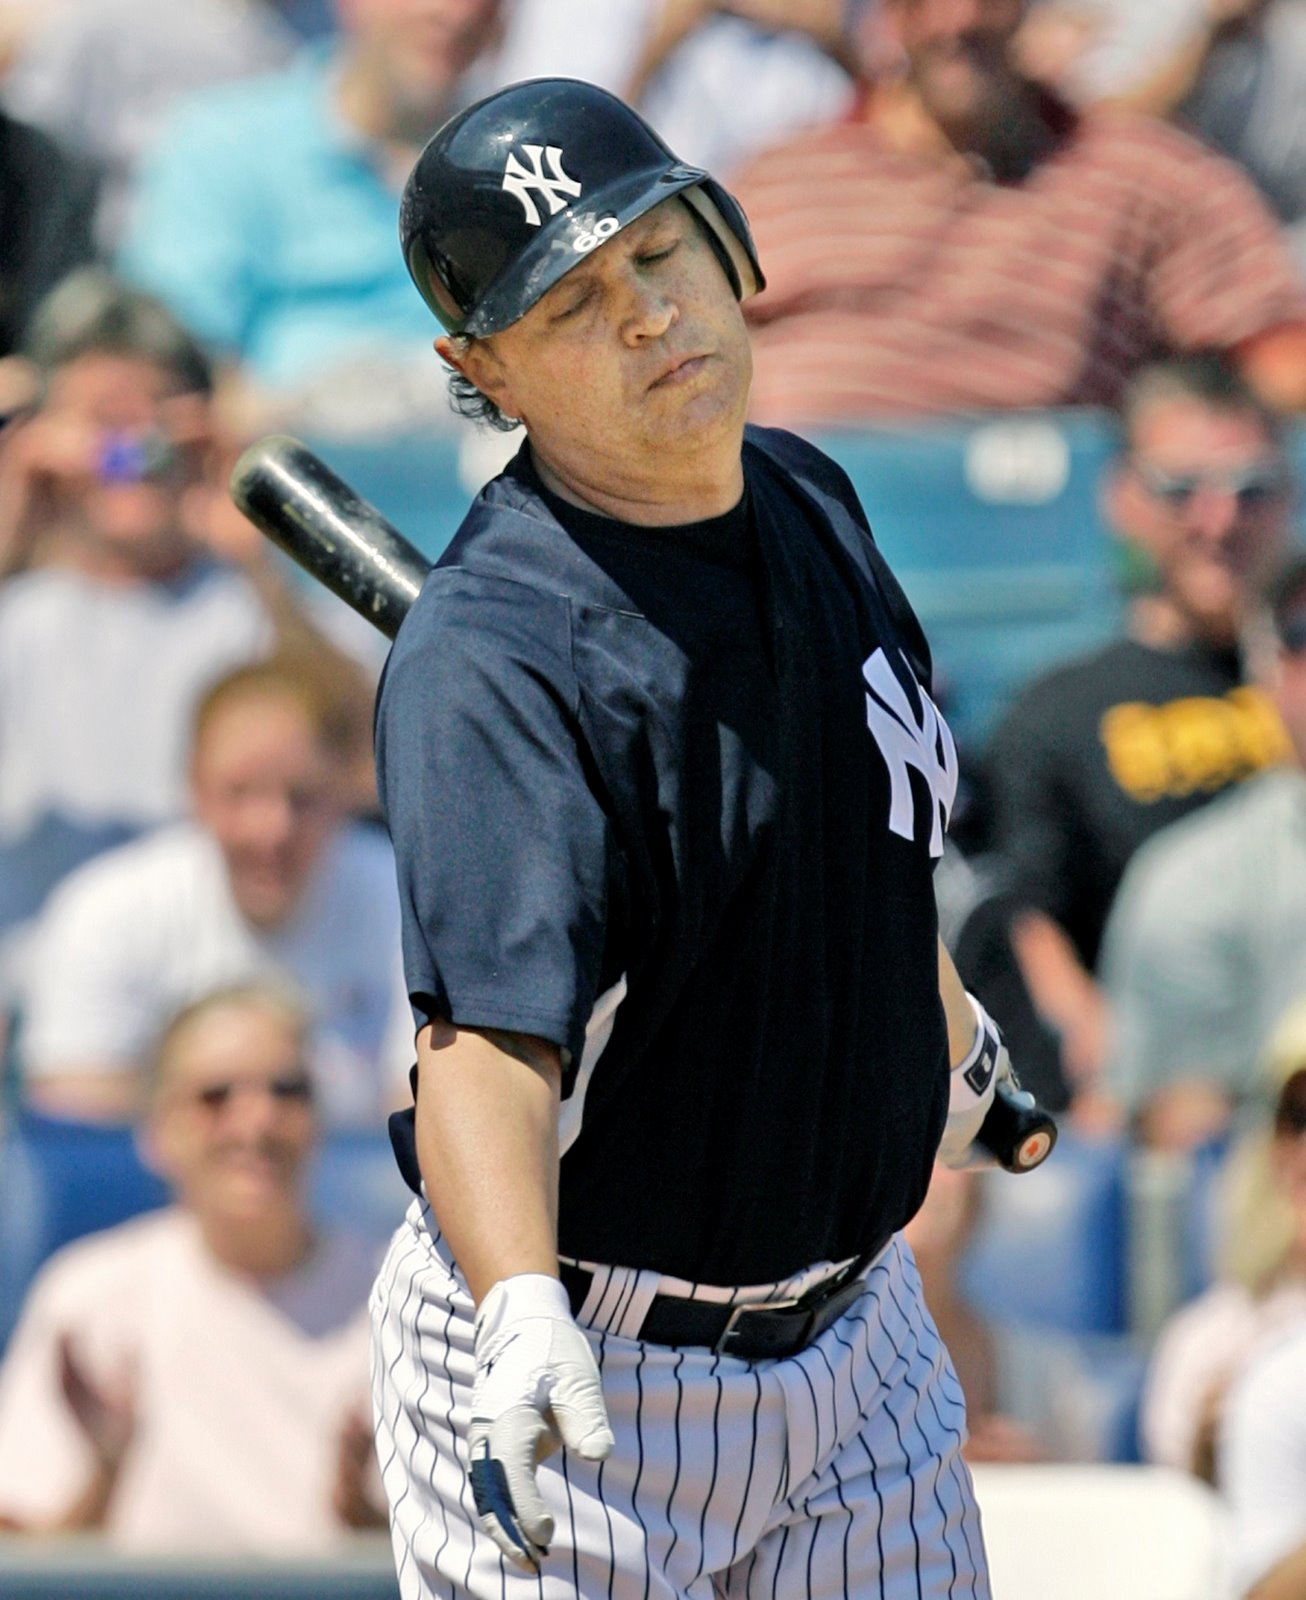 Billy Crystal struck out in his only career at-bat